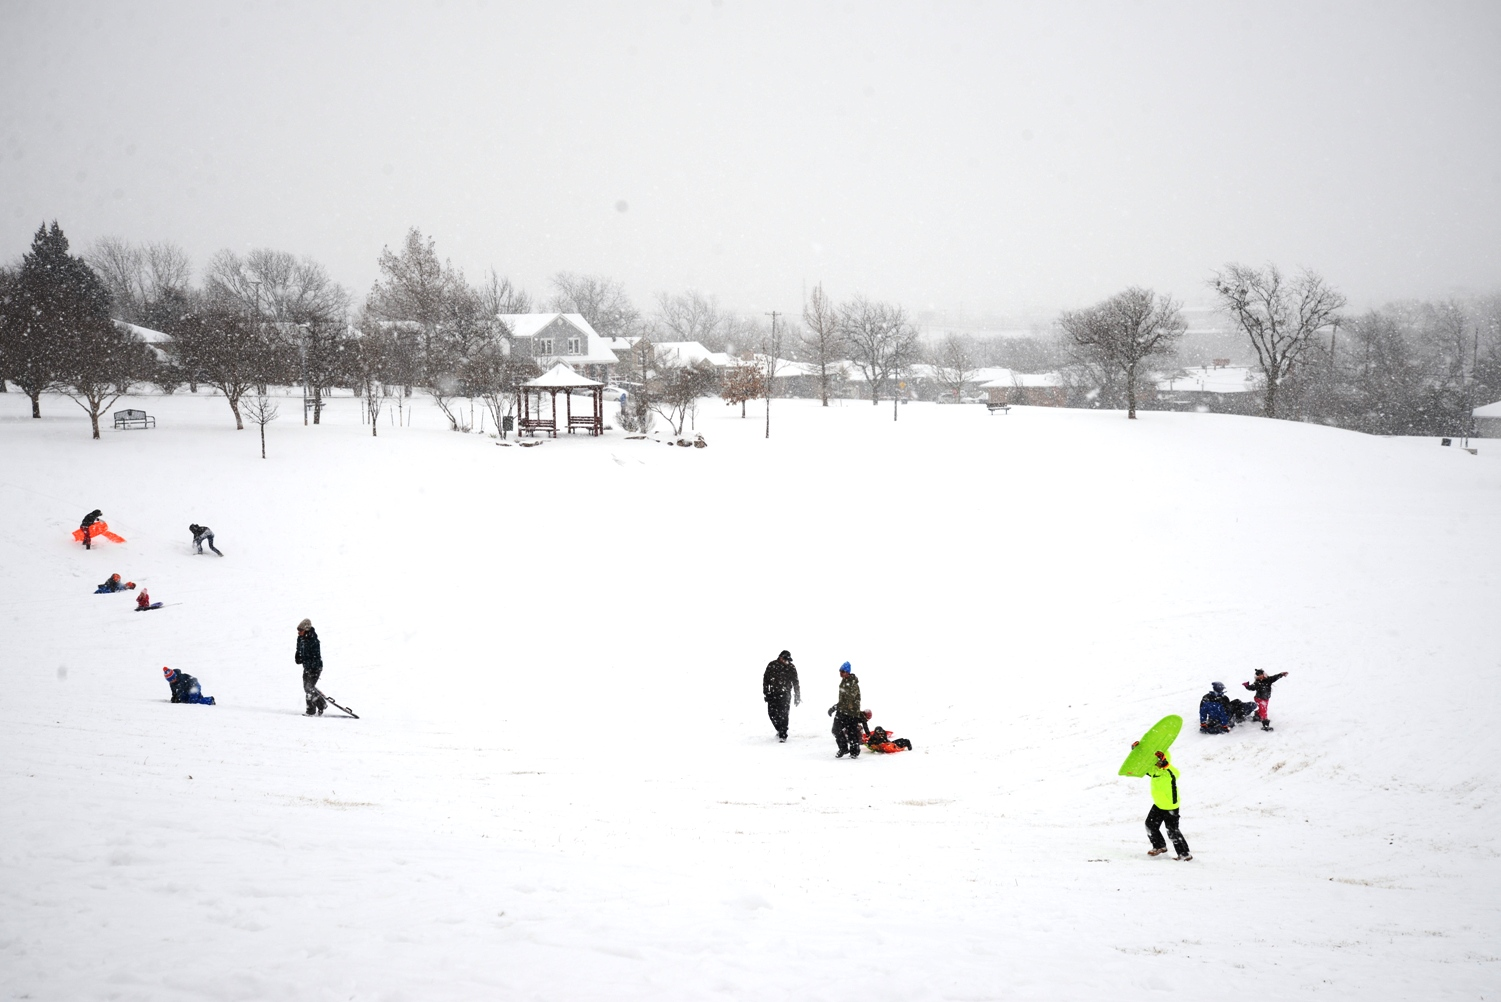 People Sledding on a snow day